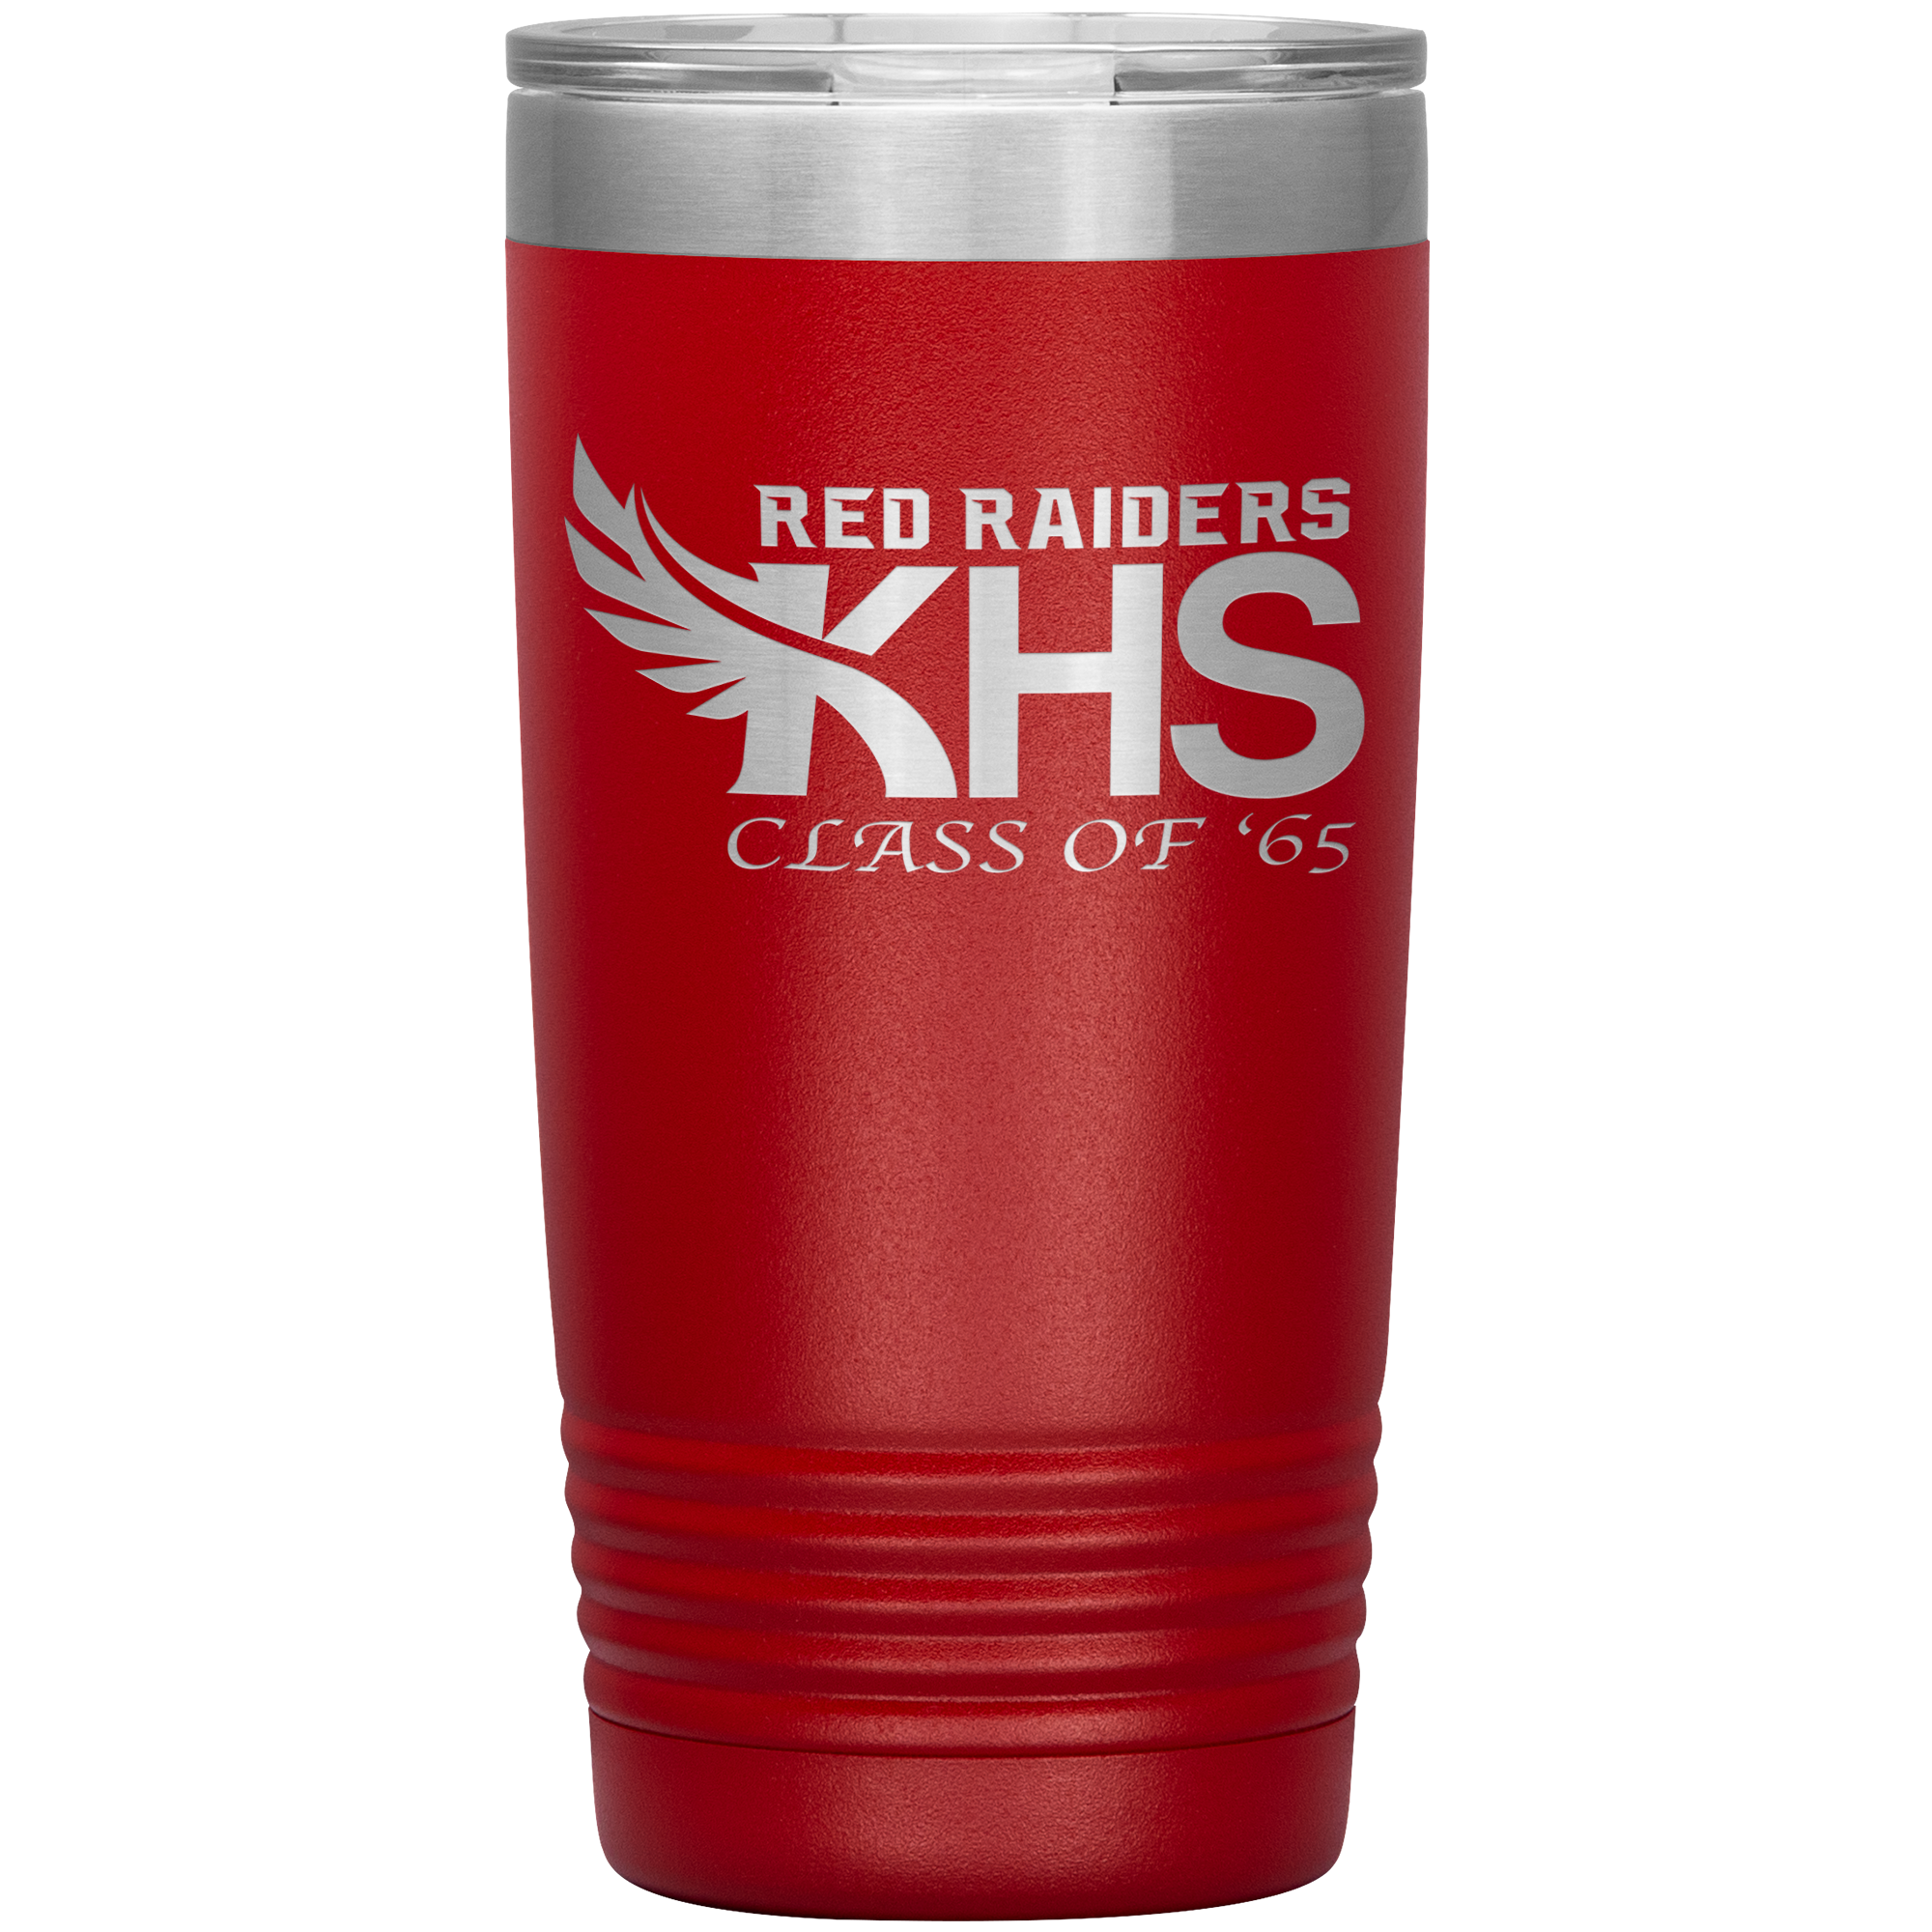 Kauai Red Raiders - Class of '65 - 20oz Laser Etched Vacuum Tumbler